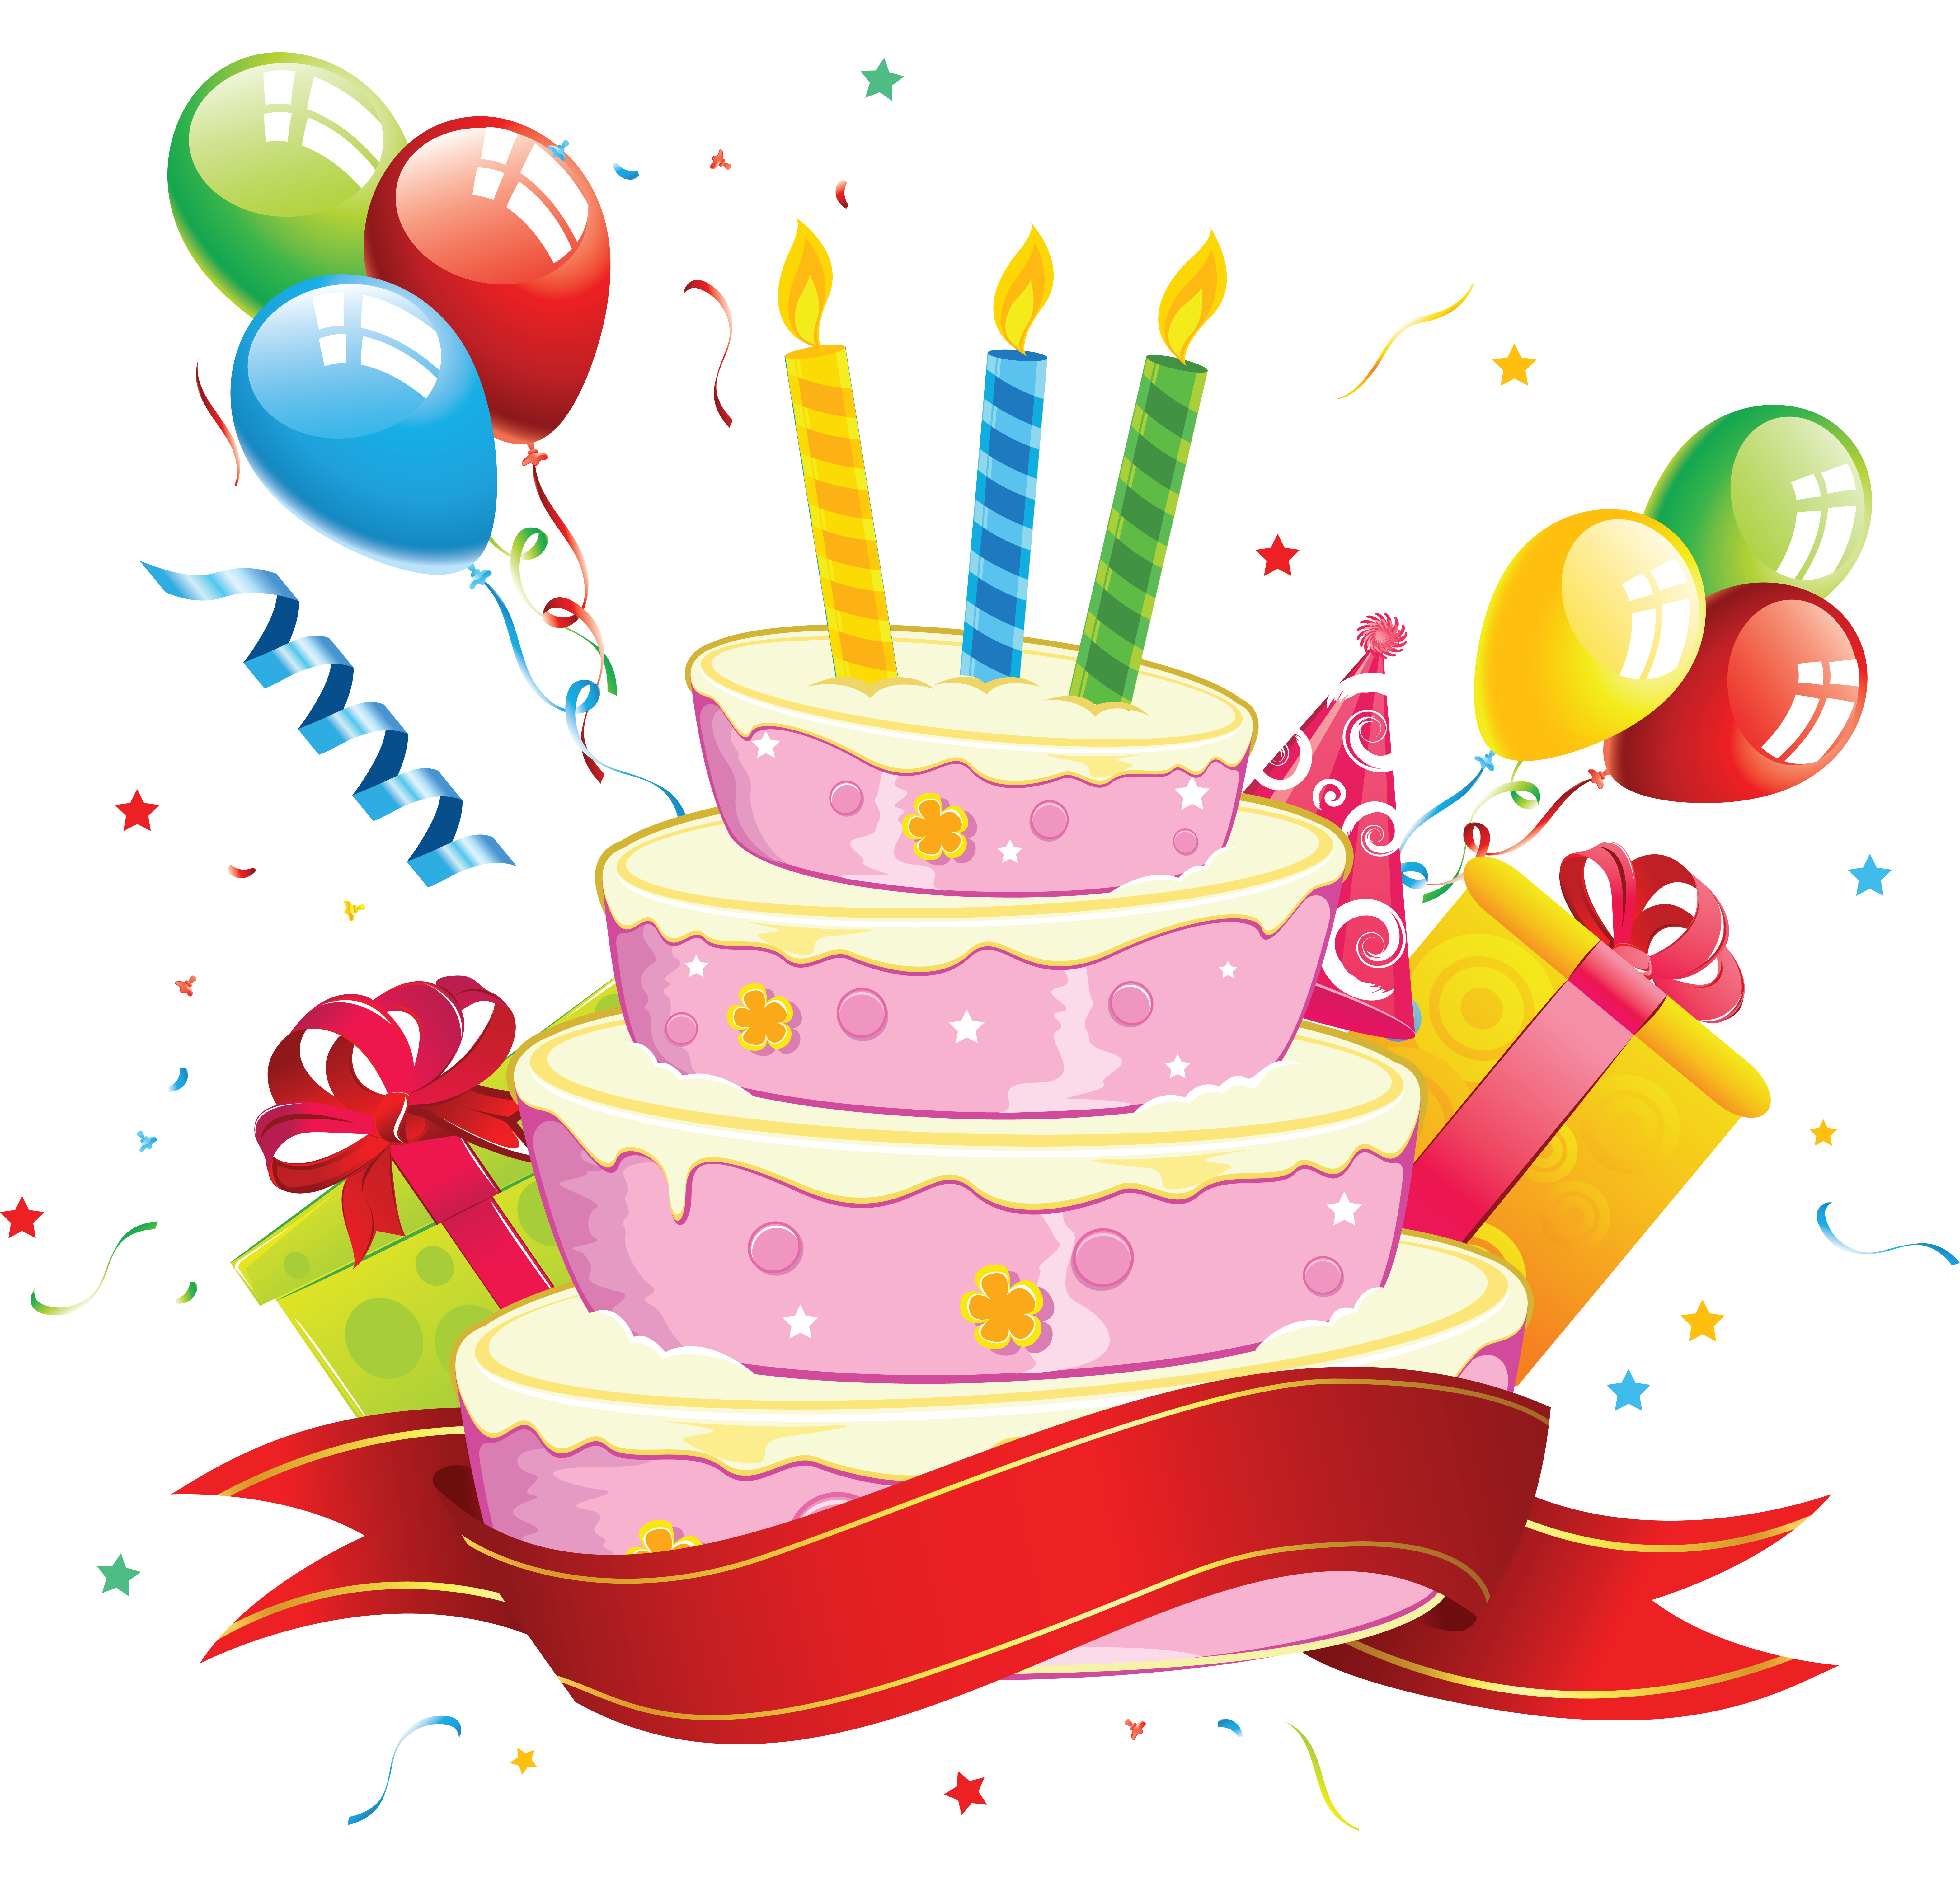 Cute birthday cake clipart jpg black and white library PNG HD Birthday Cake And Balloons Transparent HD Birthday Cake And ... jpg black and white library